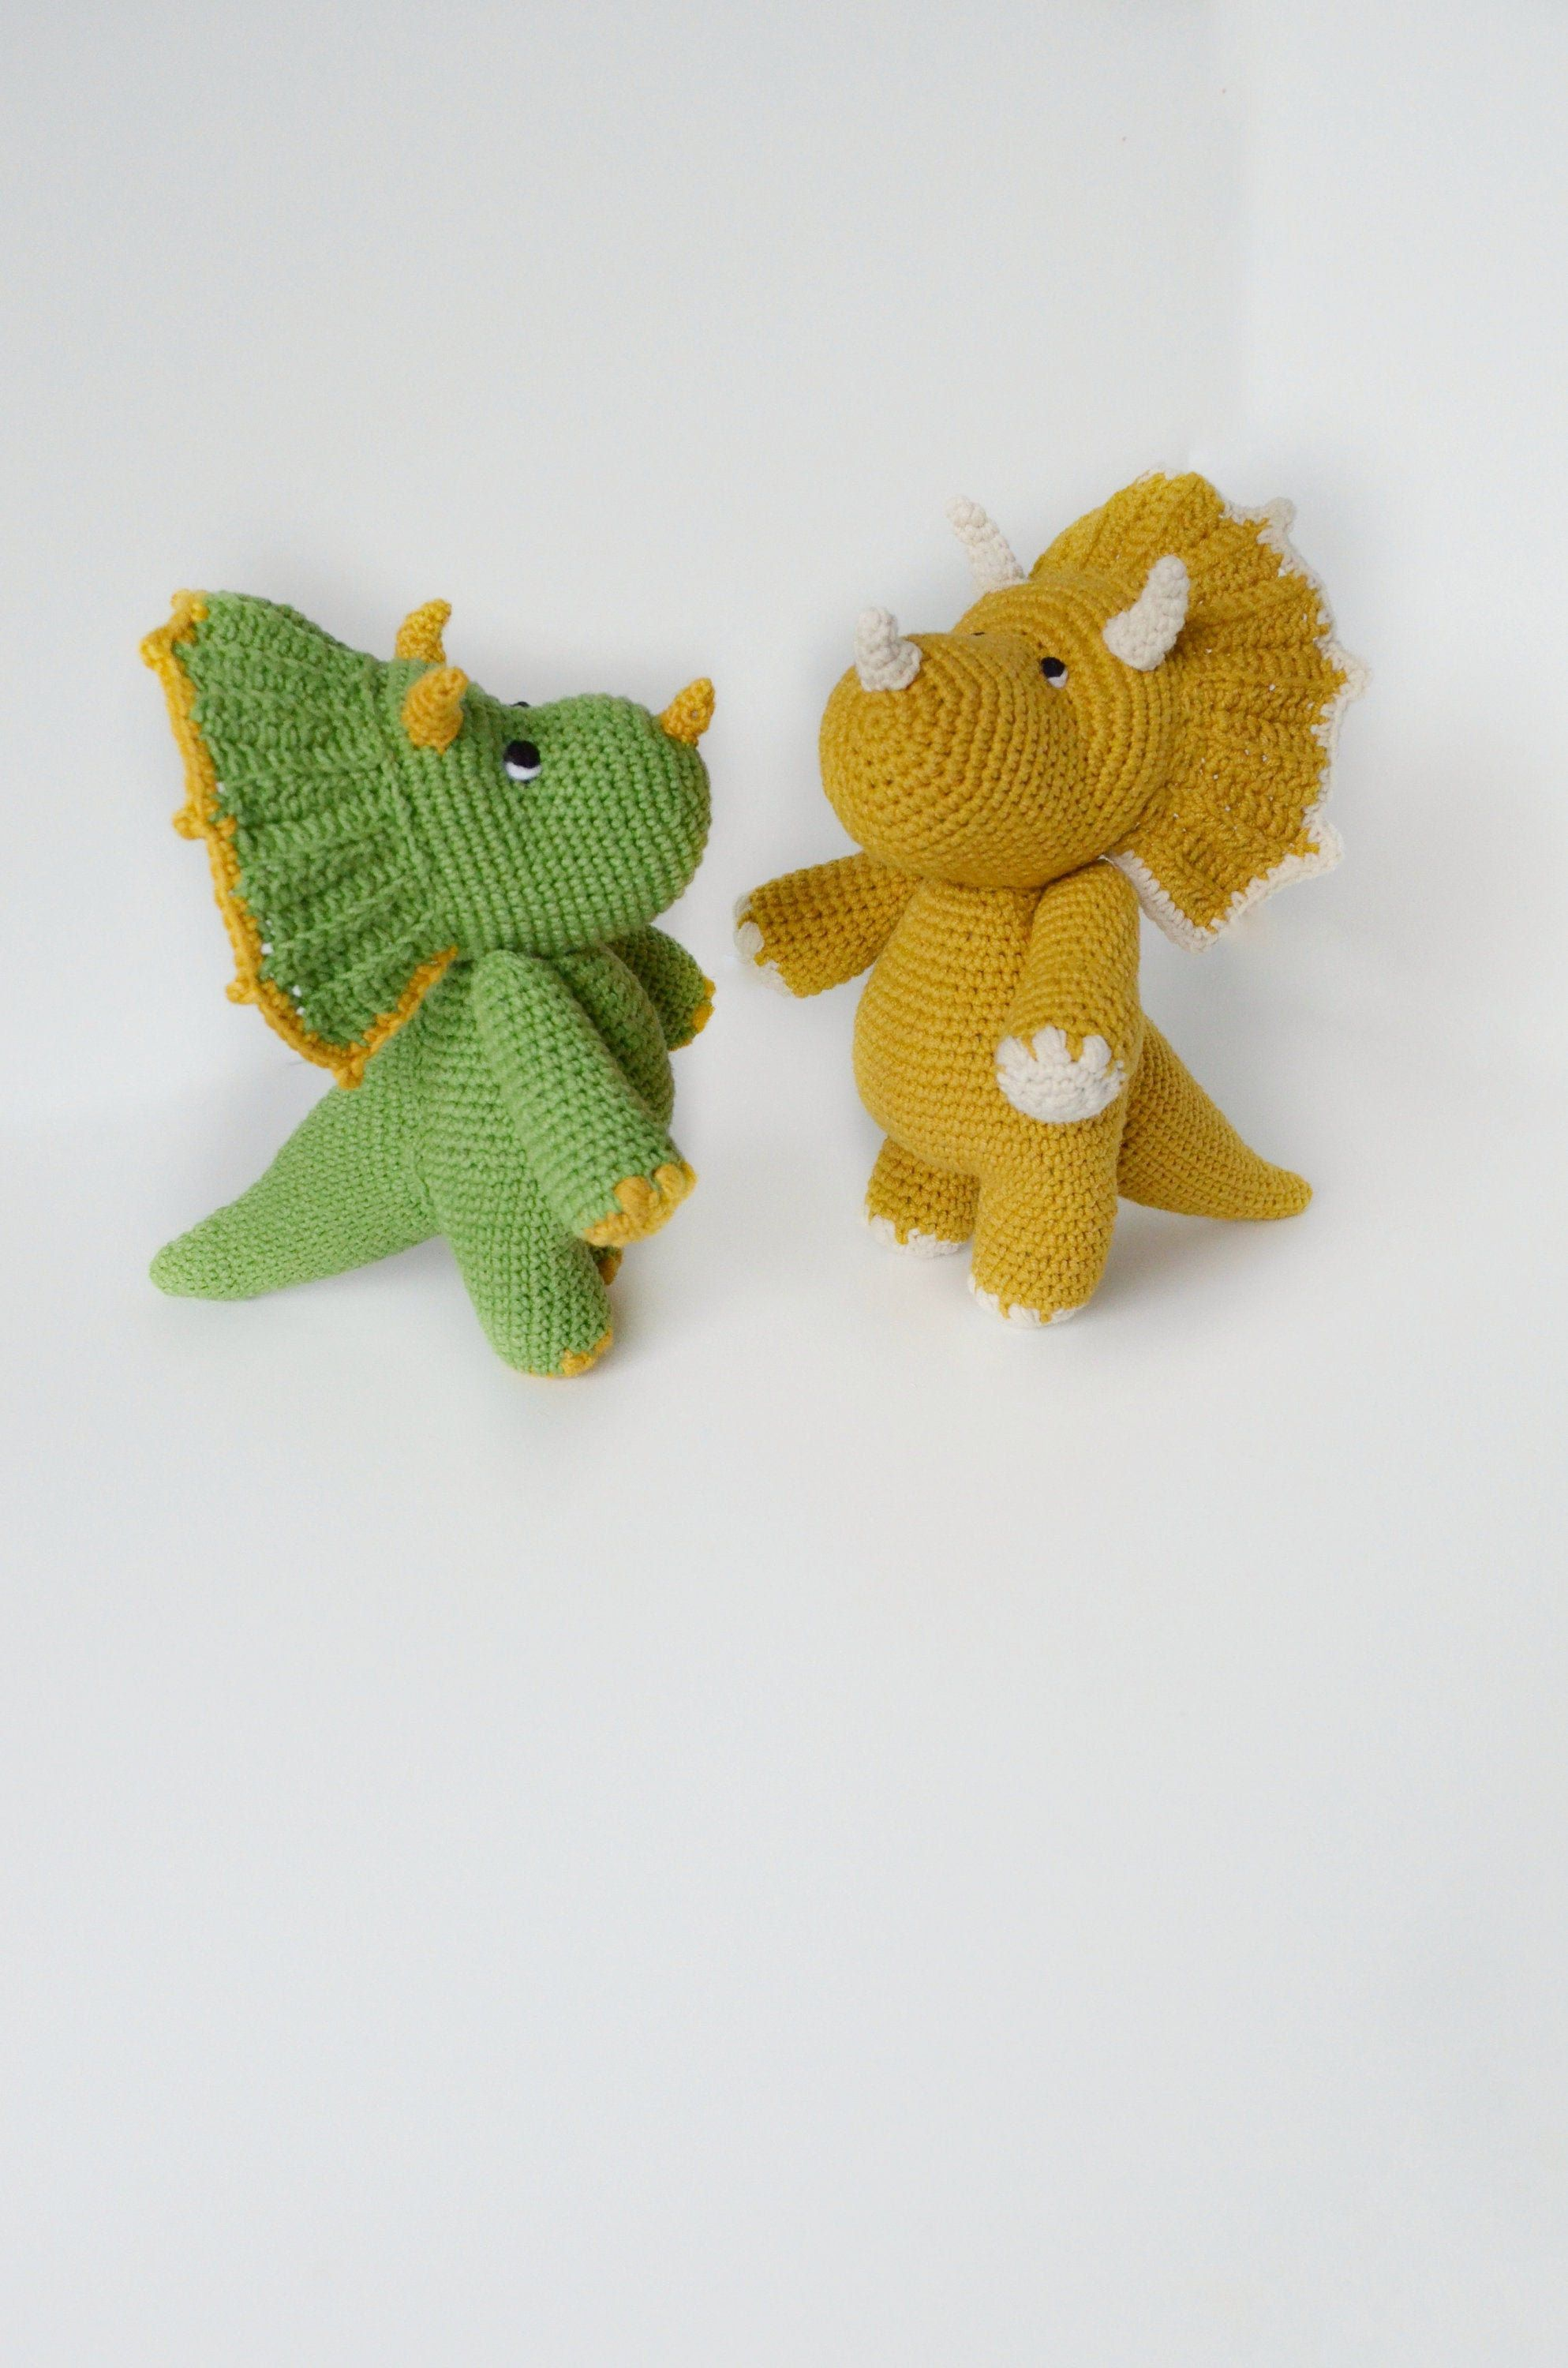 Plush triceratops toy, stuffed dinosaur nursery decor, dinosaur birthday gift